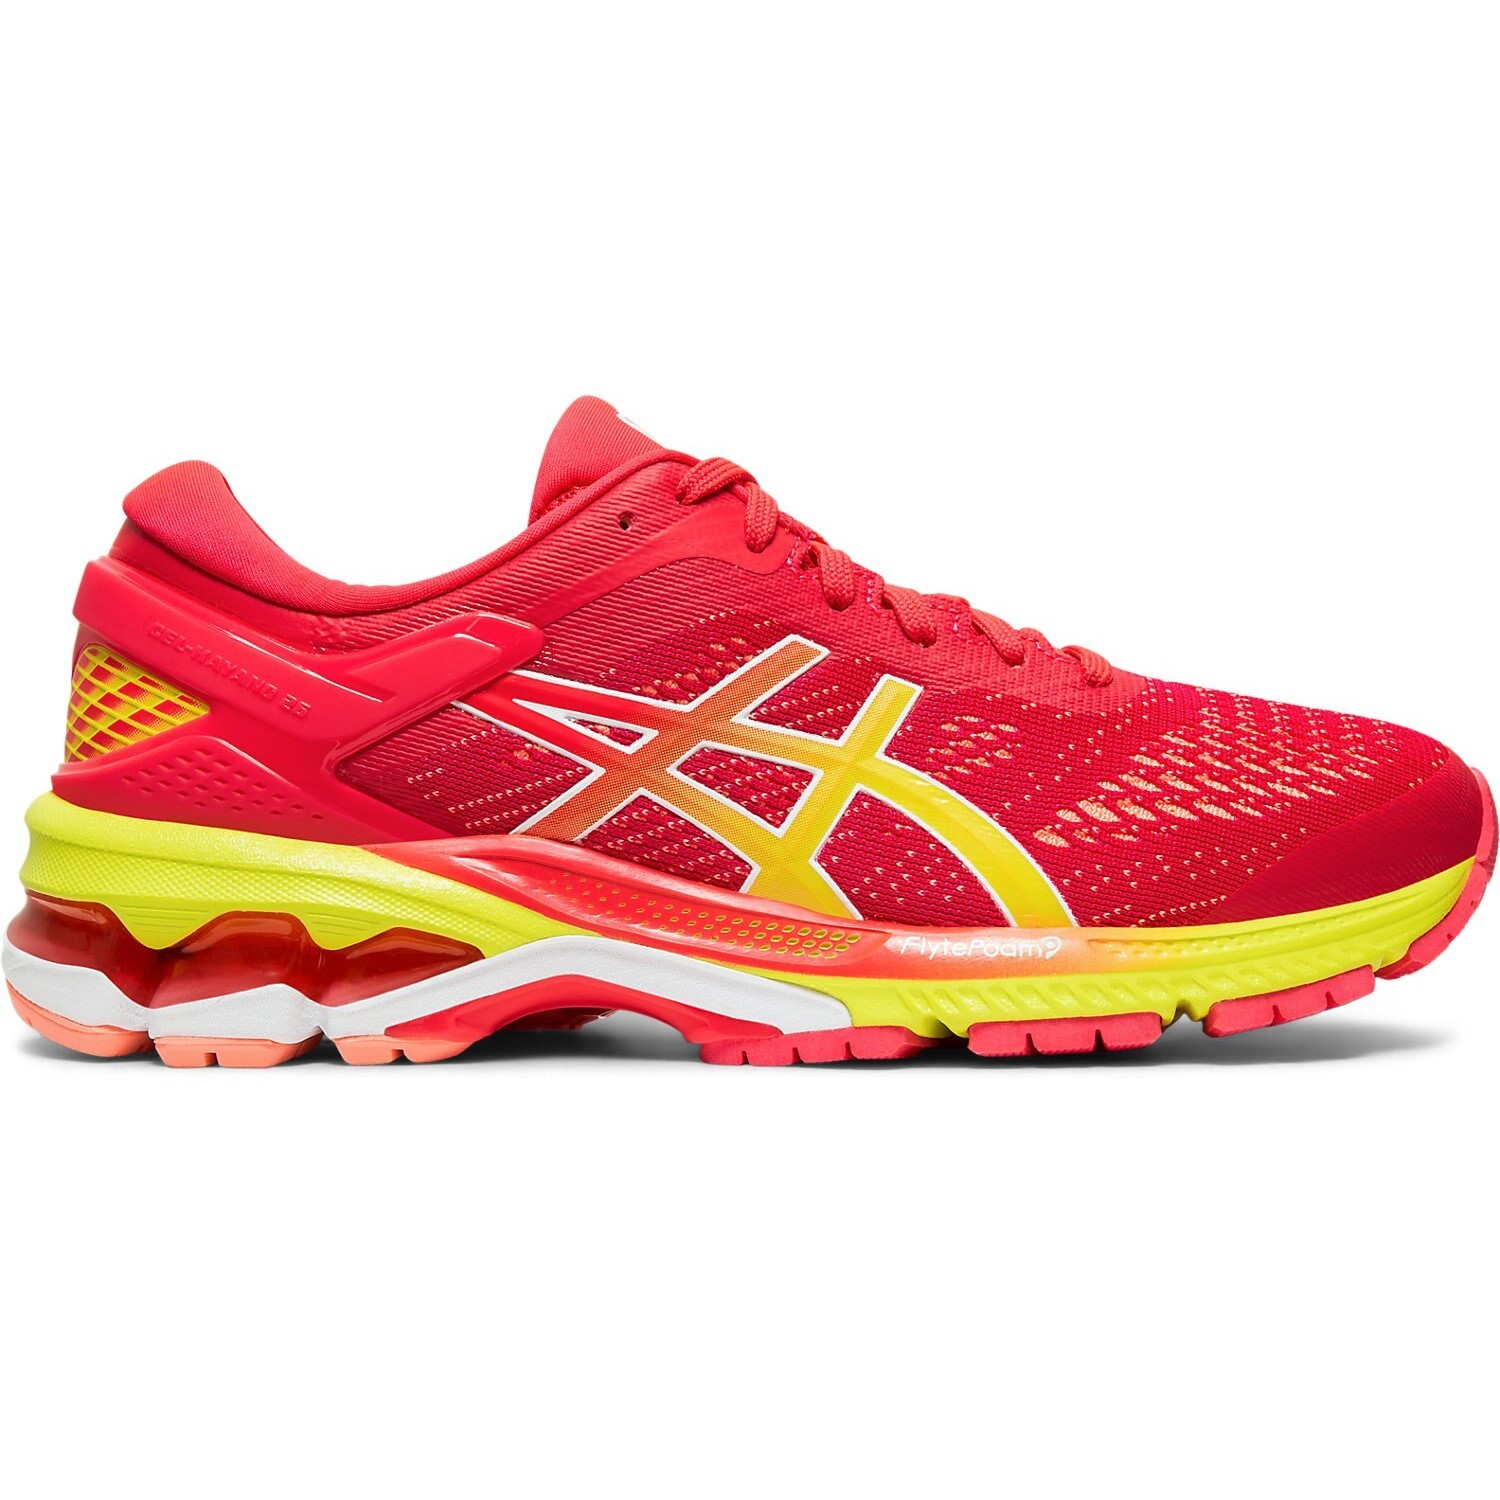 4bc90730 Asics Gel Kayano 26 10P/10C - Womens Running Shoes